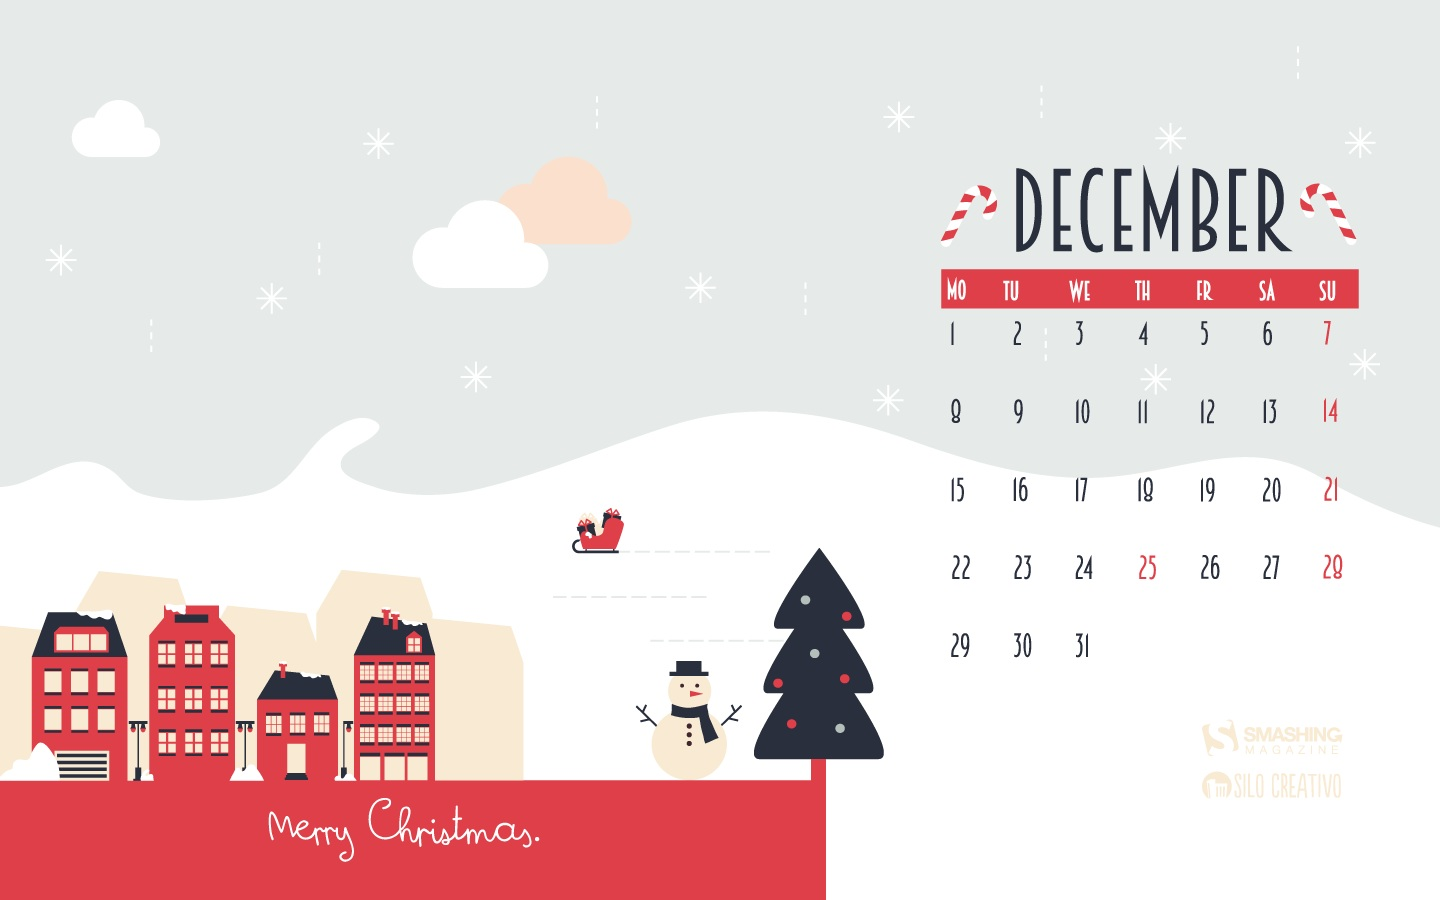 In January Calendar Wallpaper 51158